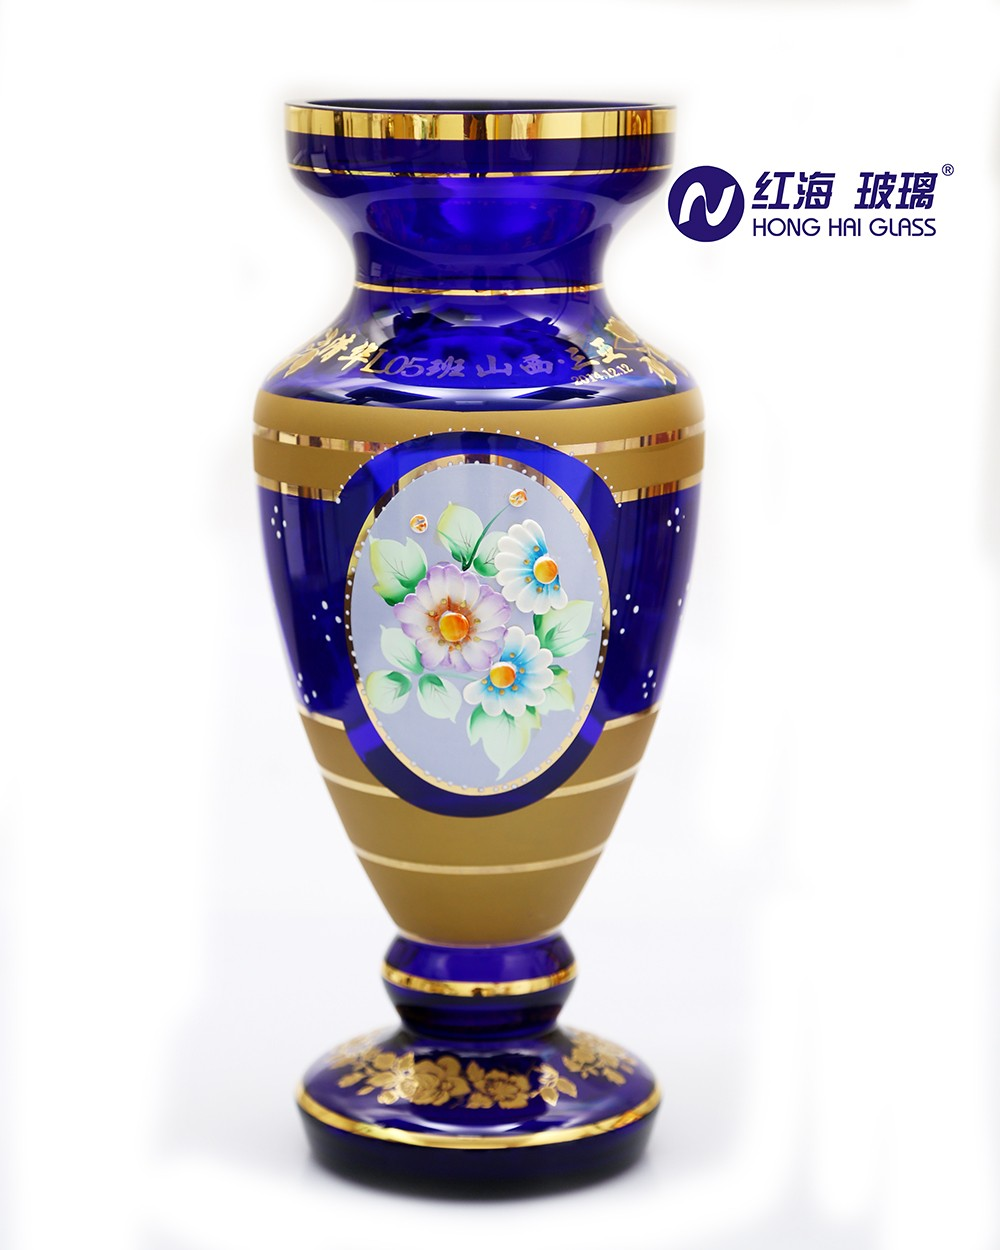 Home goods decorative vase home goods decorative vase suppliers home goods decorative vase home goods decorative vase suppliers and manufacturers at alibaba reviewsmspy